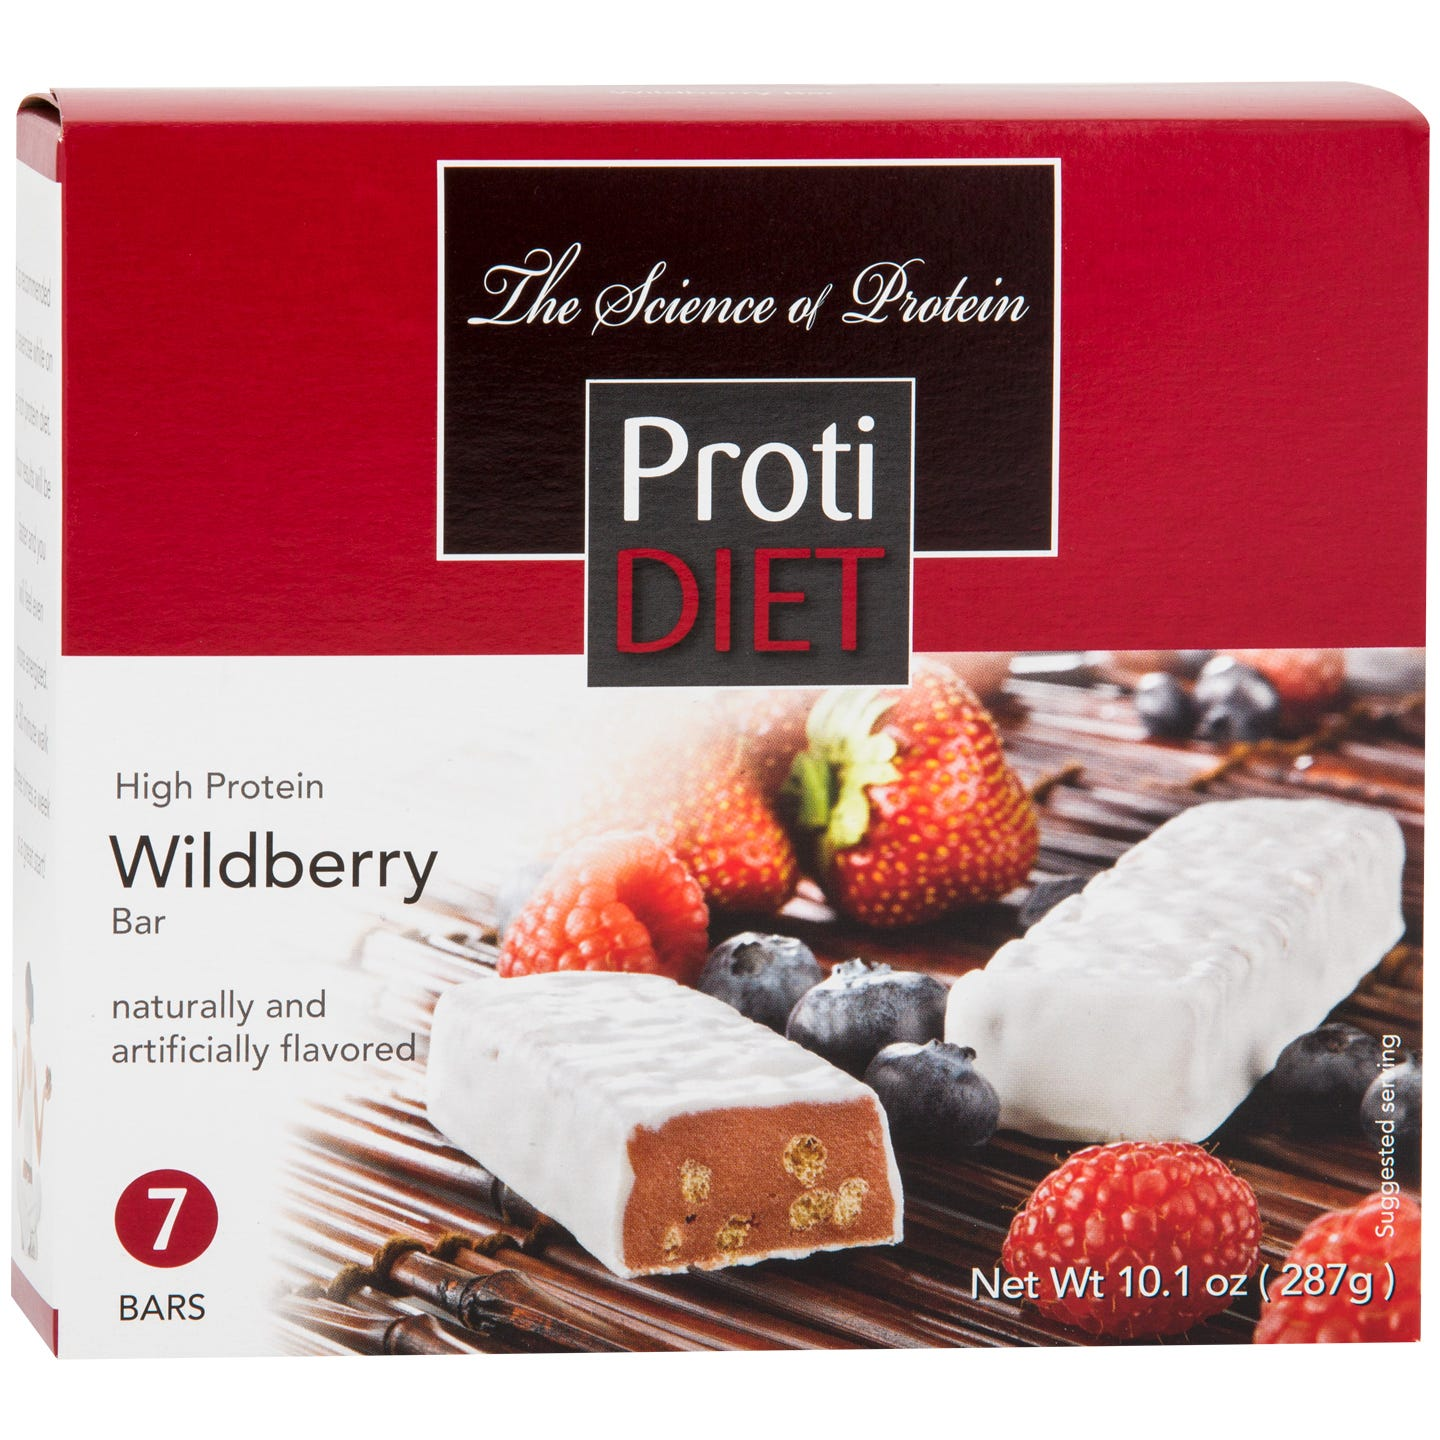 Protein Bars Wildberry (7 ct) - ProtiDiet - Rapid Diet Weight Loss Products Shop